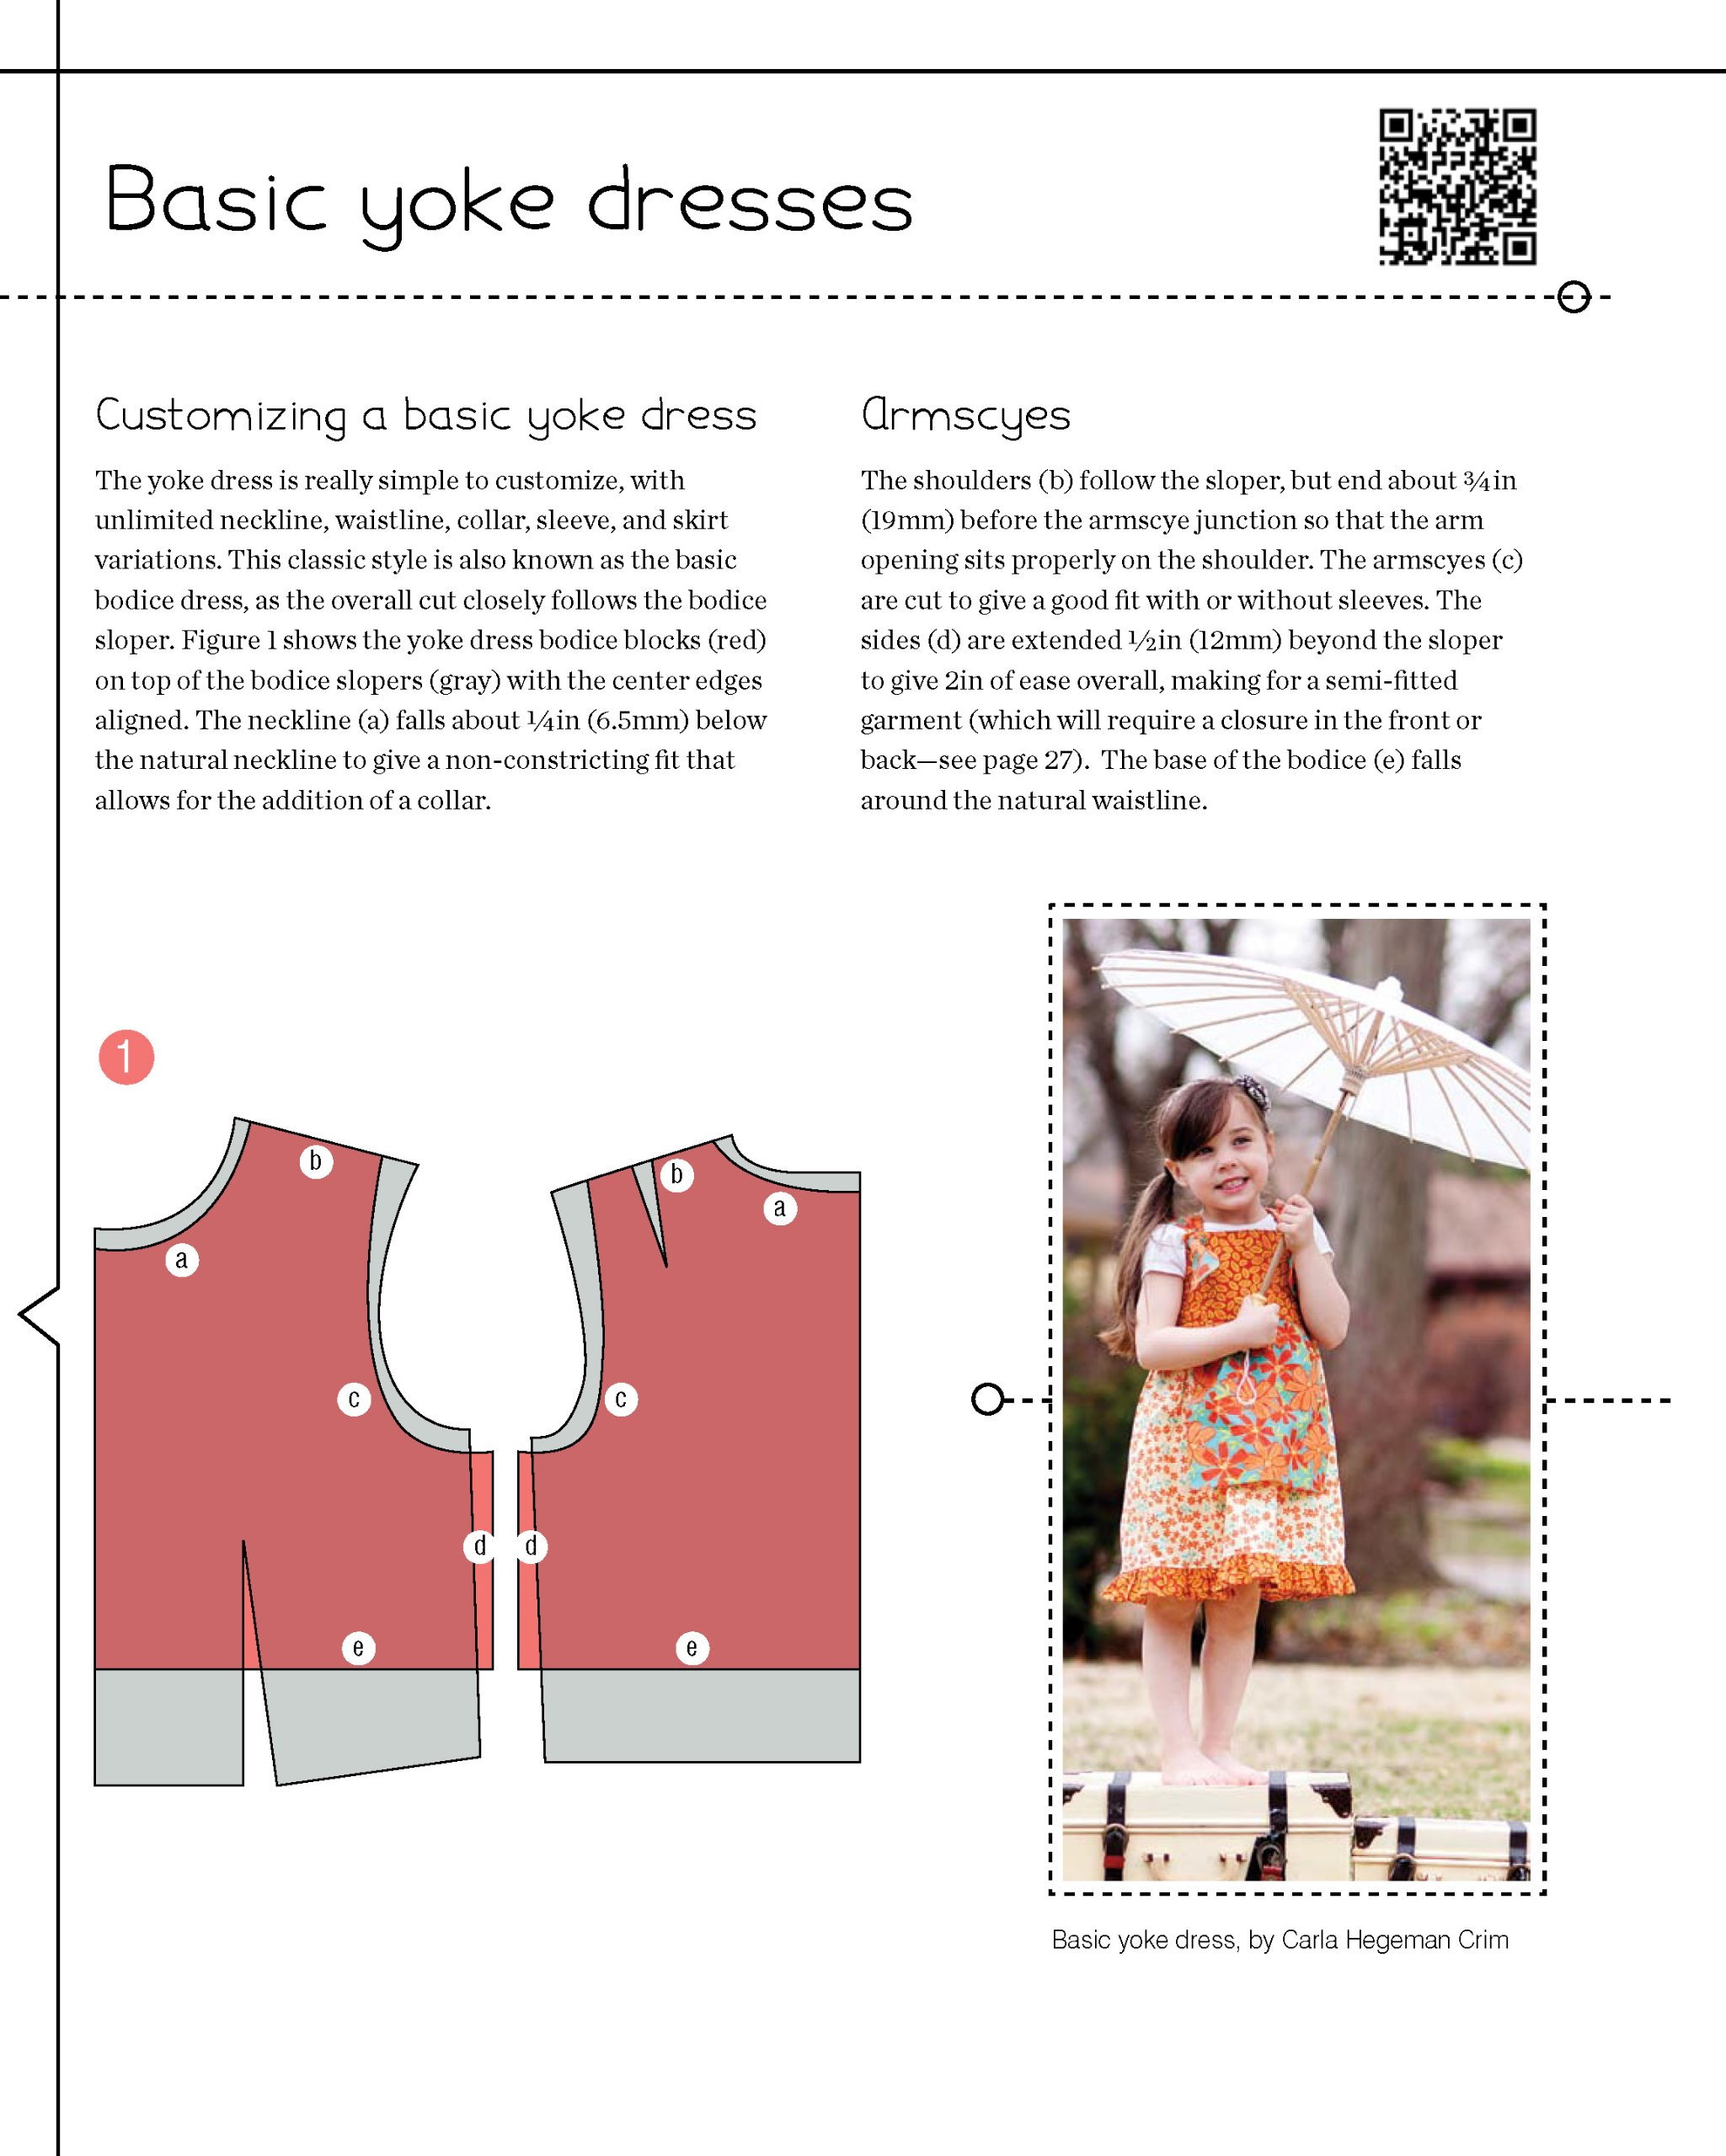 Amazon pattern making for kids clothes all you need to know amazon pattern making for kids clothes all you need to know about designing adapting and customizing sewing patterns for childrens clothing jeuxipadfo Image collections